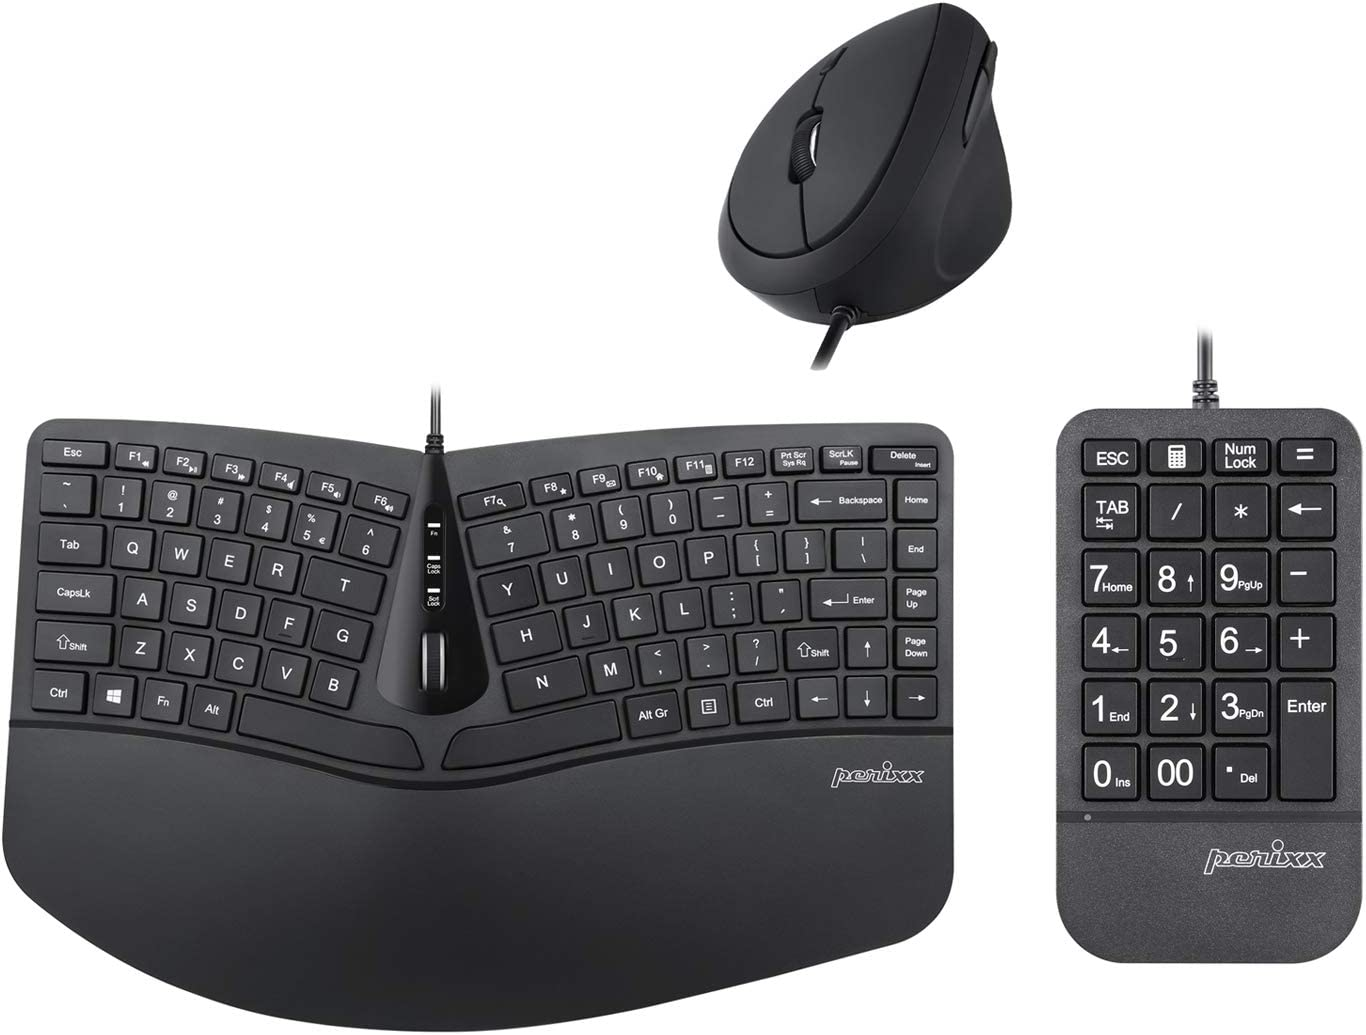 PERIDUO-406 3-in-1 Wired Ergonomic Mini Combo with Keyboard, Mouse, and Keypad